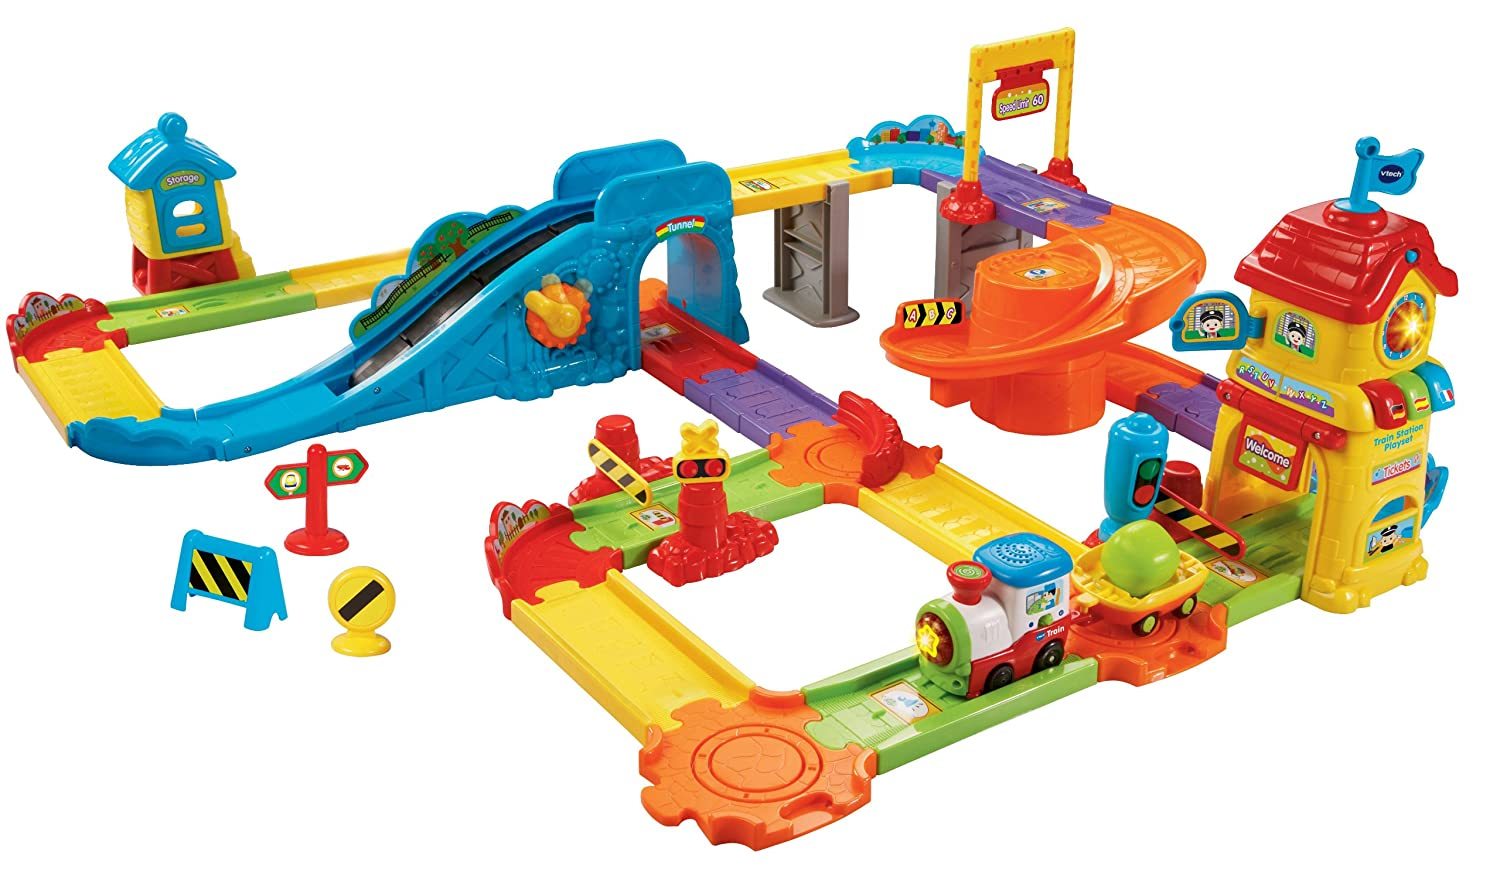 Top 9 Best Train Sets for Toddlers (2019 Reviews) 8